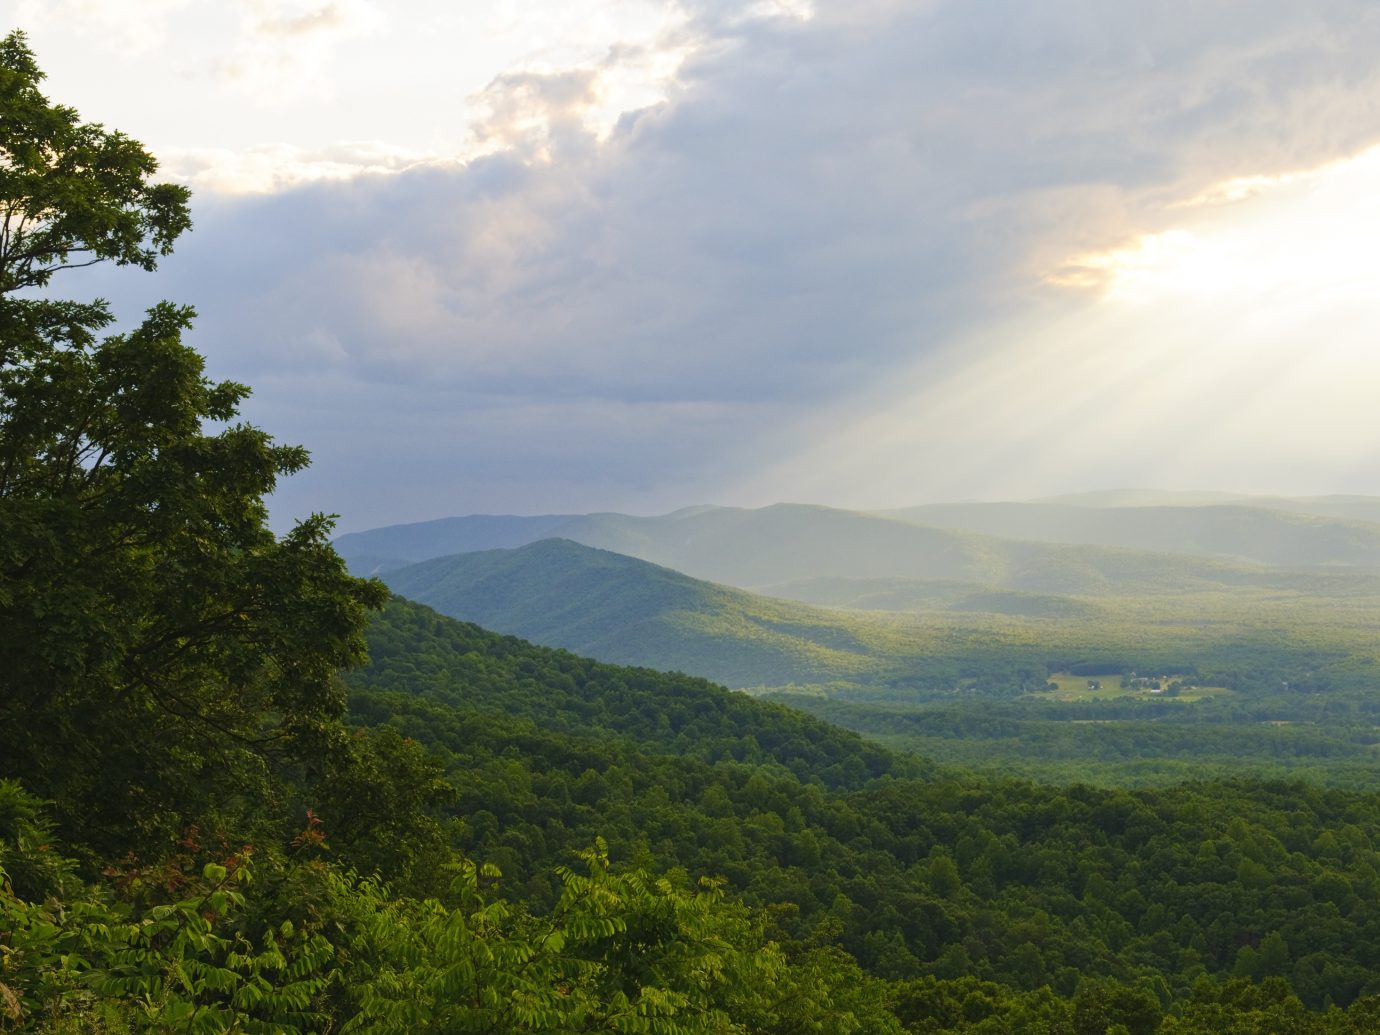 Rays of sunlight after a rain in the Shenandoah Valley